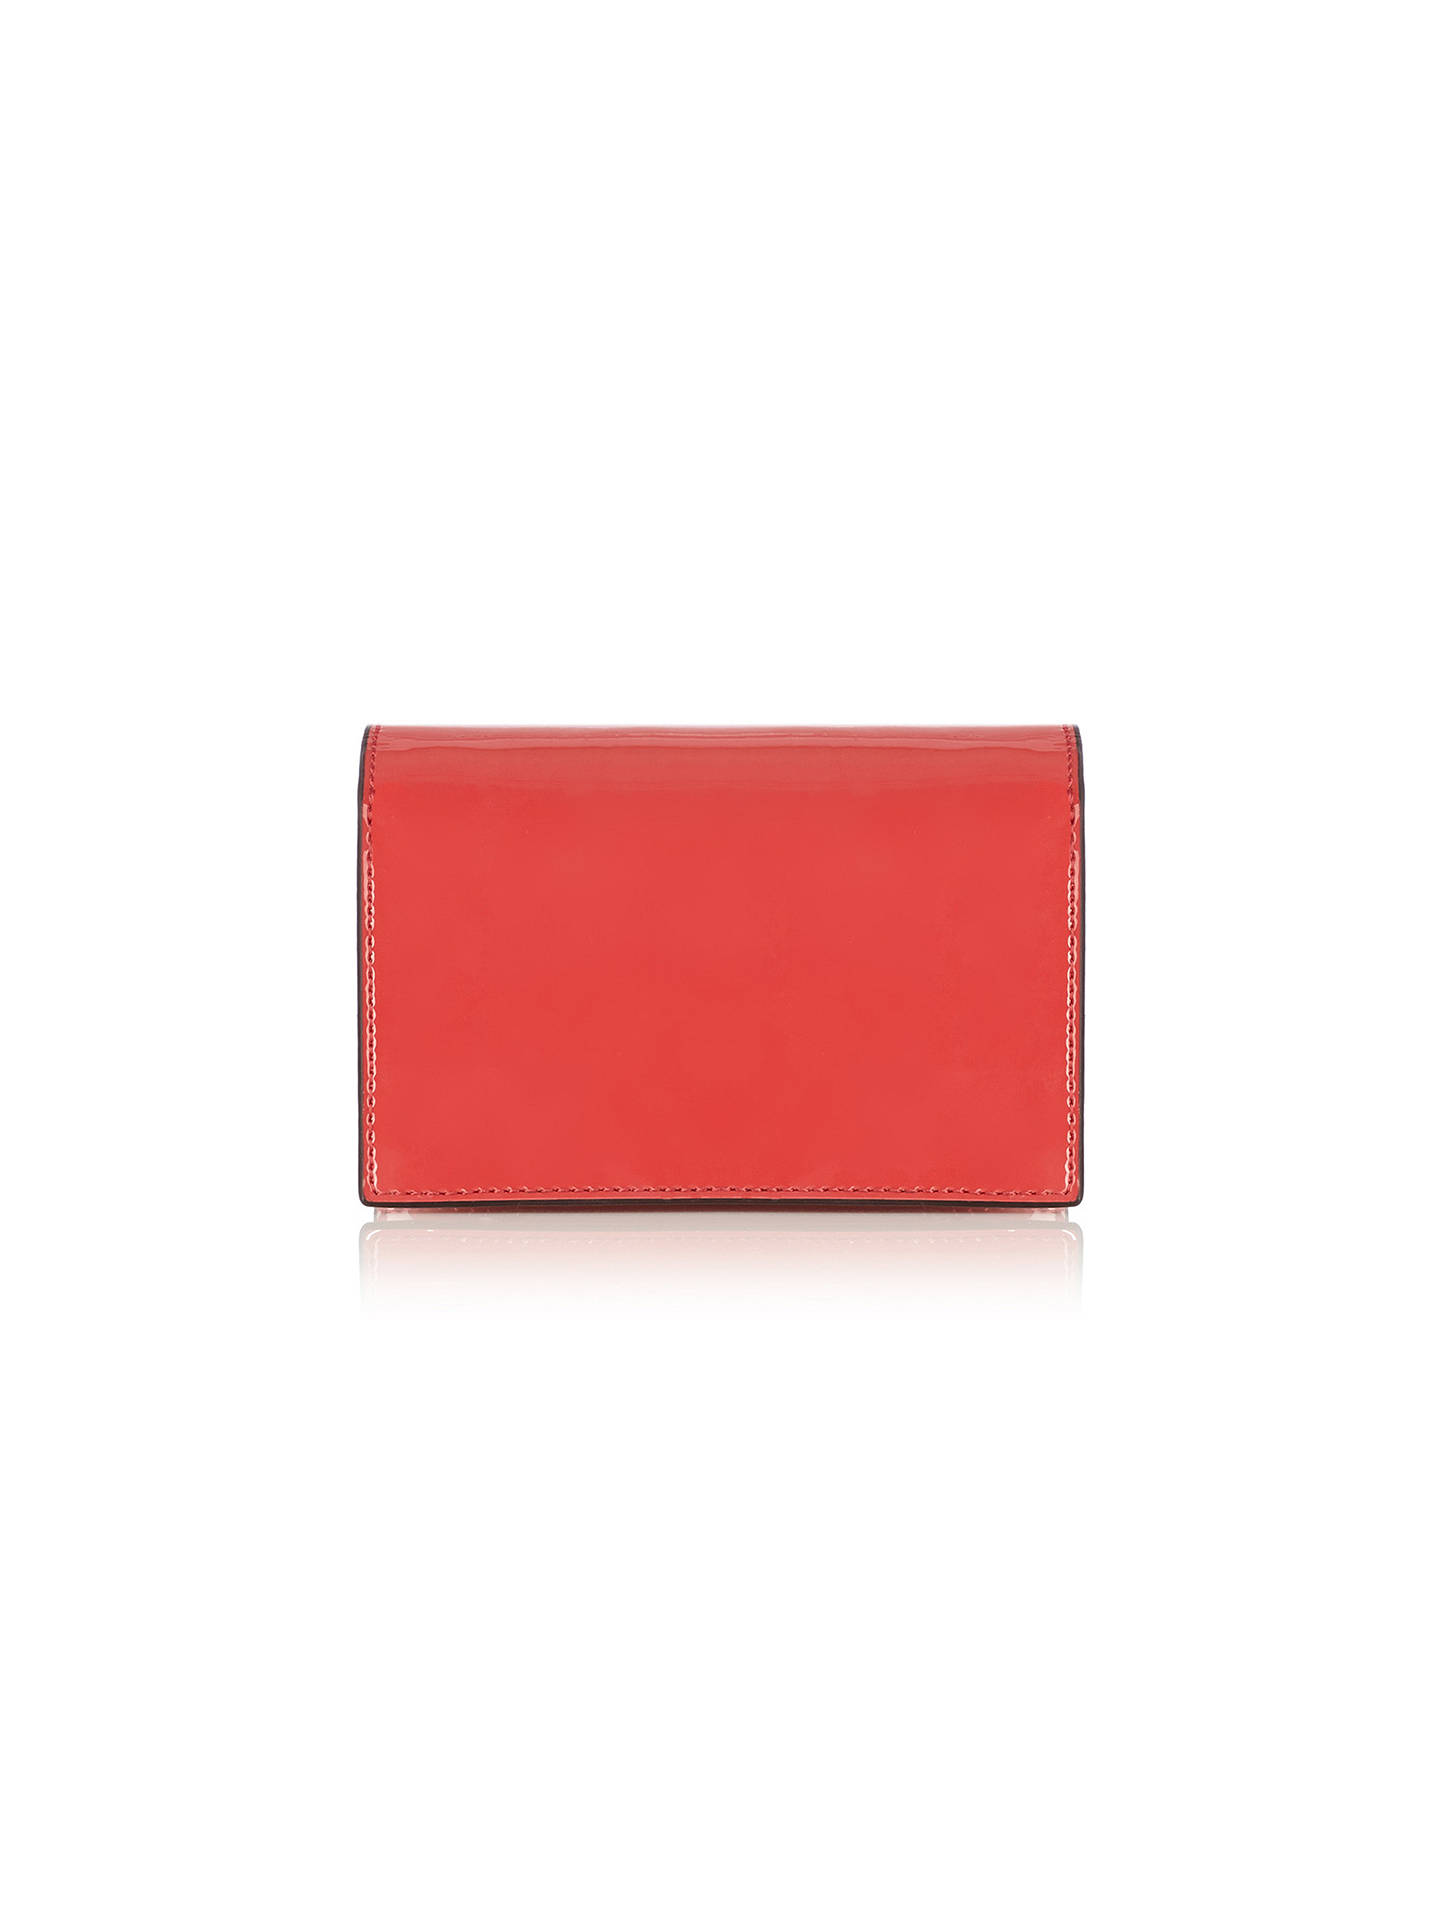 45bd179628 ... Buy Karen Millen Colourful Patent Mini Bag, Pink Online at  johnlewis.com ...